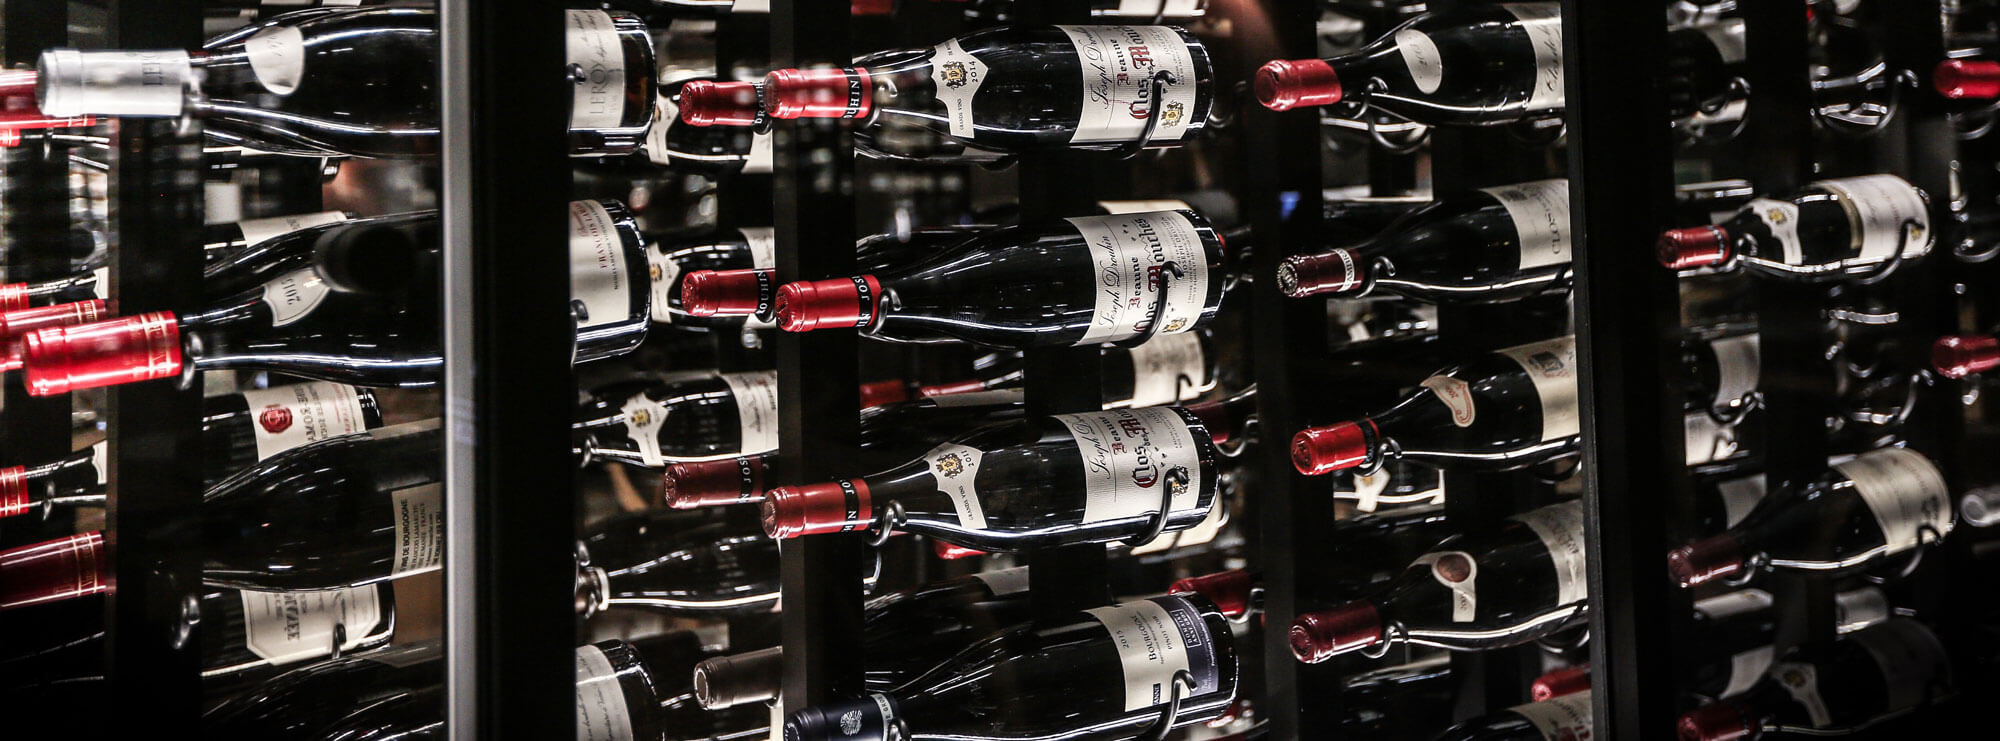 IoT-Driven ISTMOS Protects the World's Wine